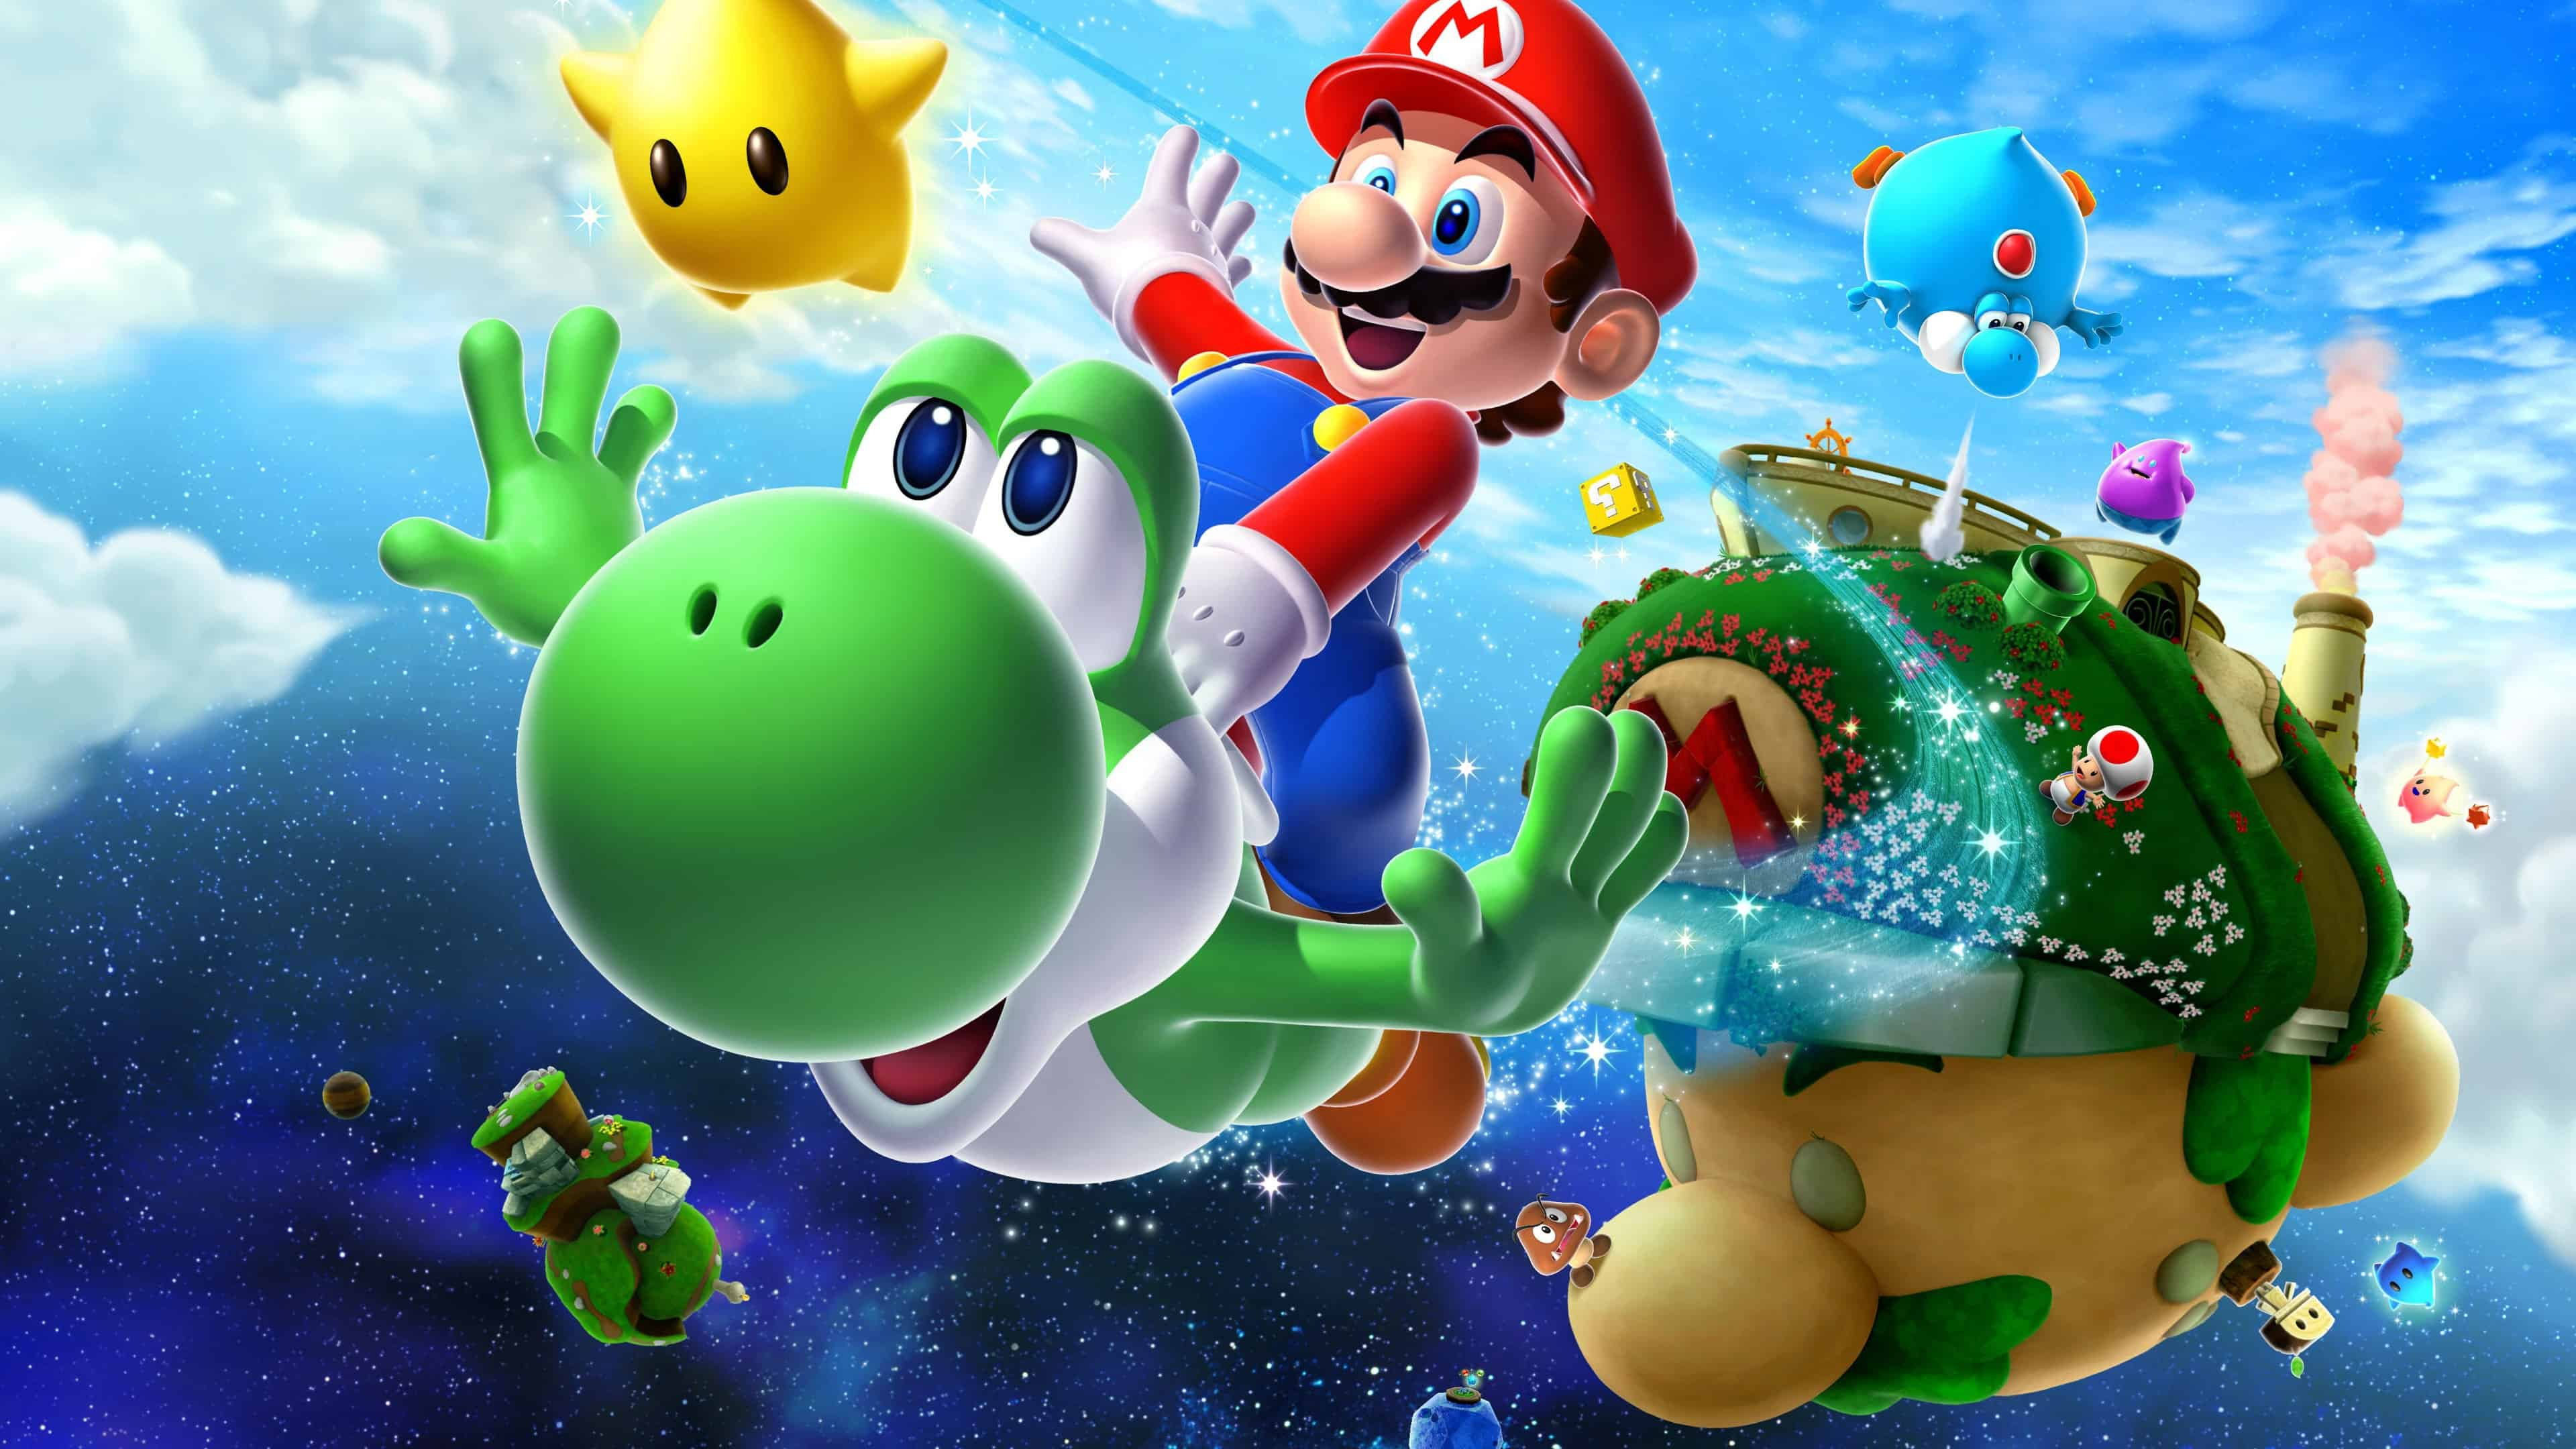 Super Mario Galaxy 2 Uhd 4k Wallpaper Pixelz